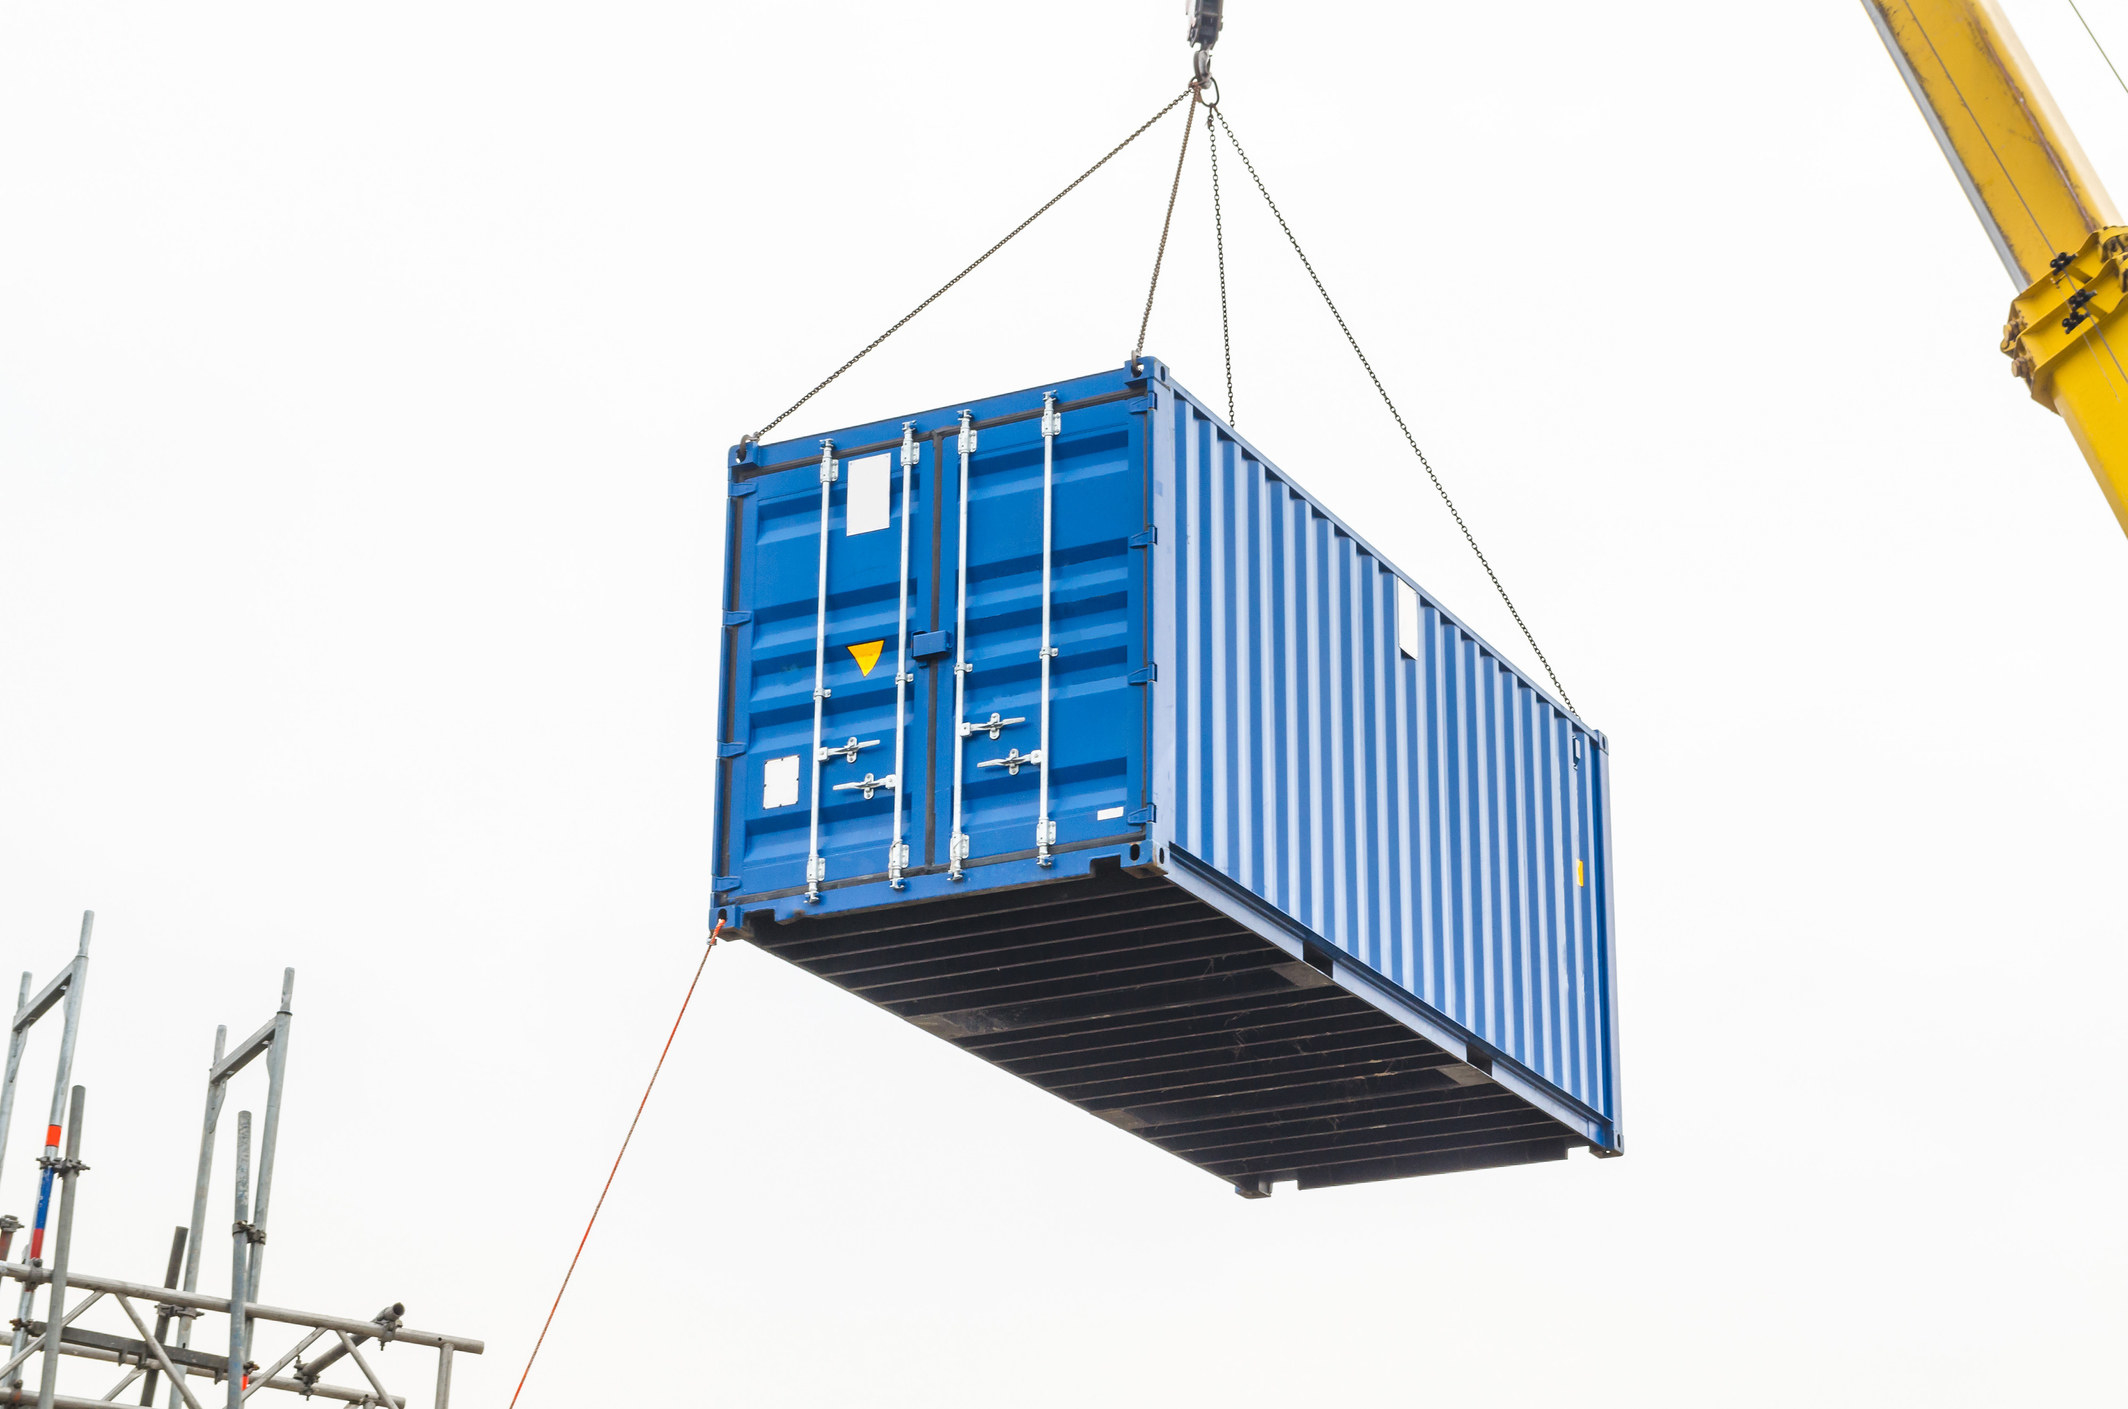 A typical shipping container being held up by a crane